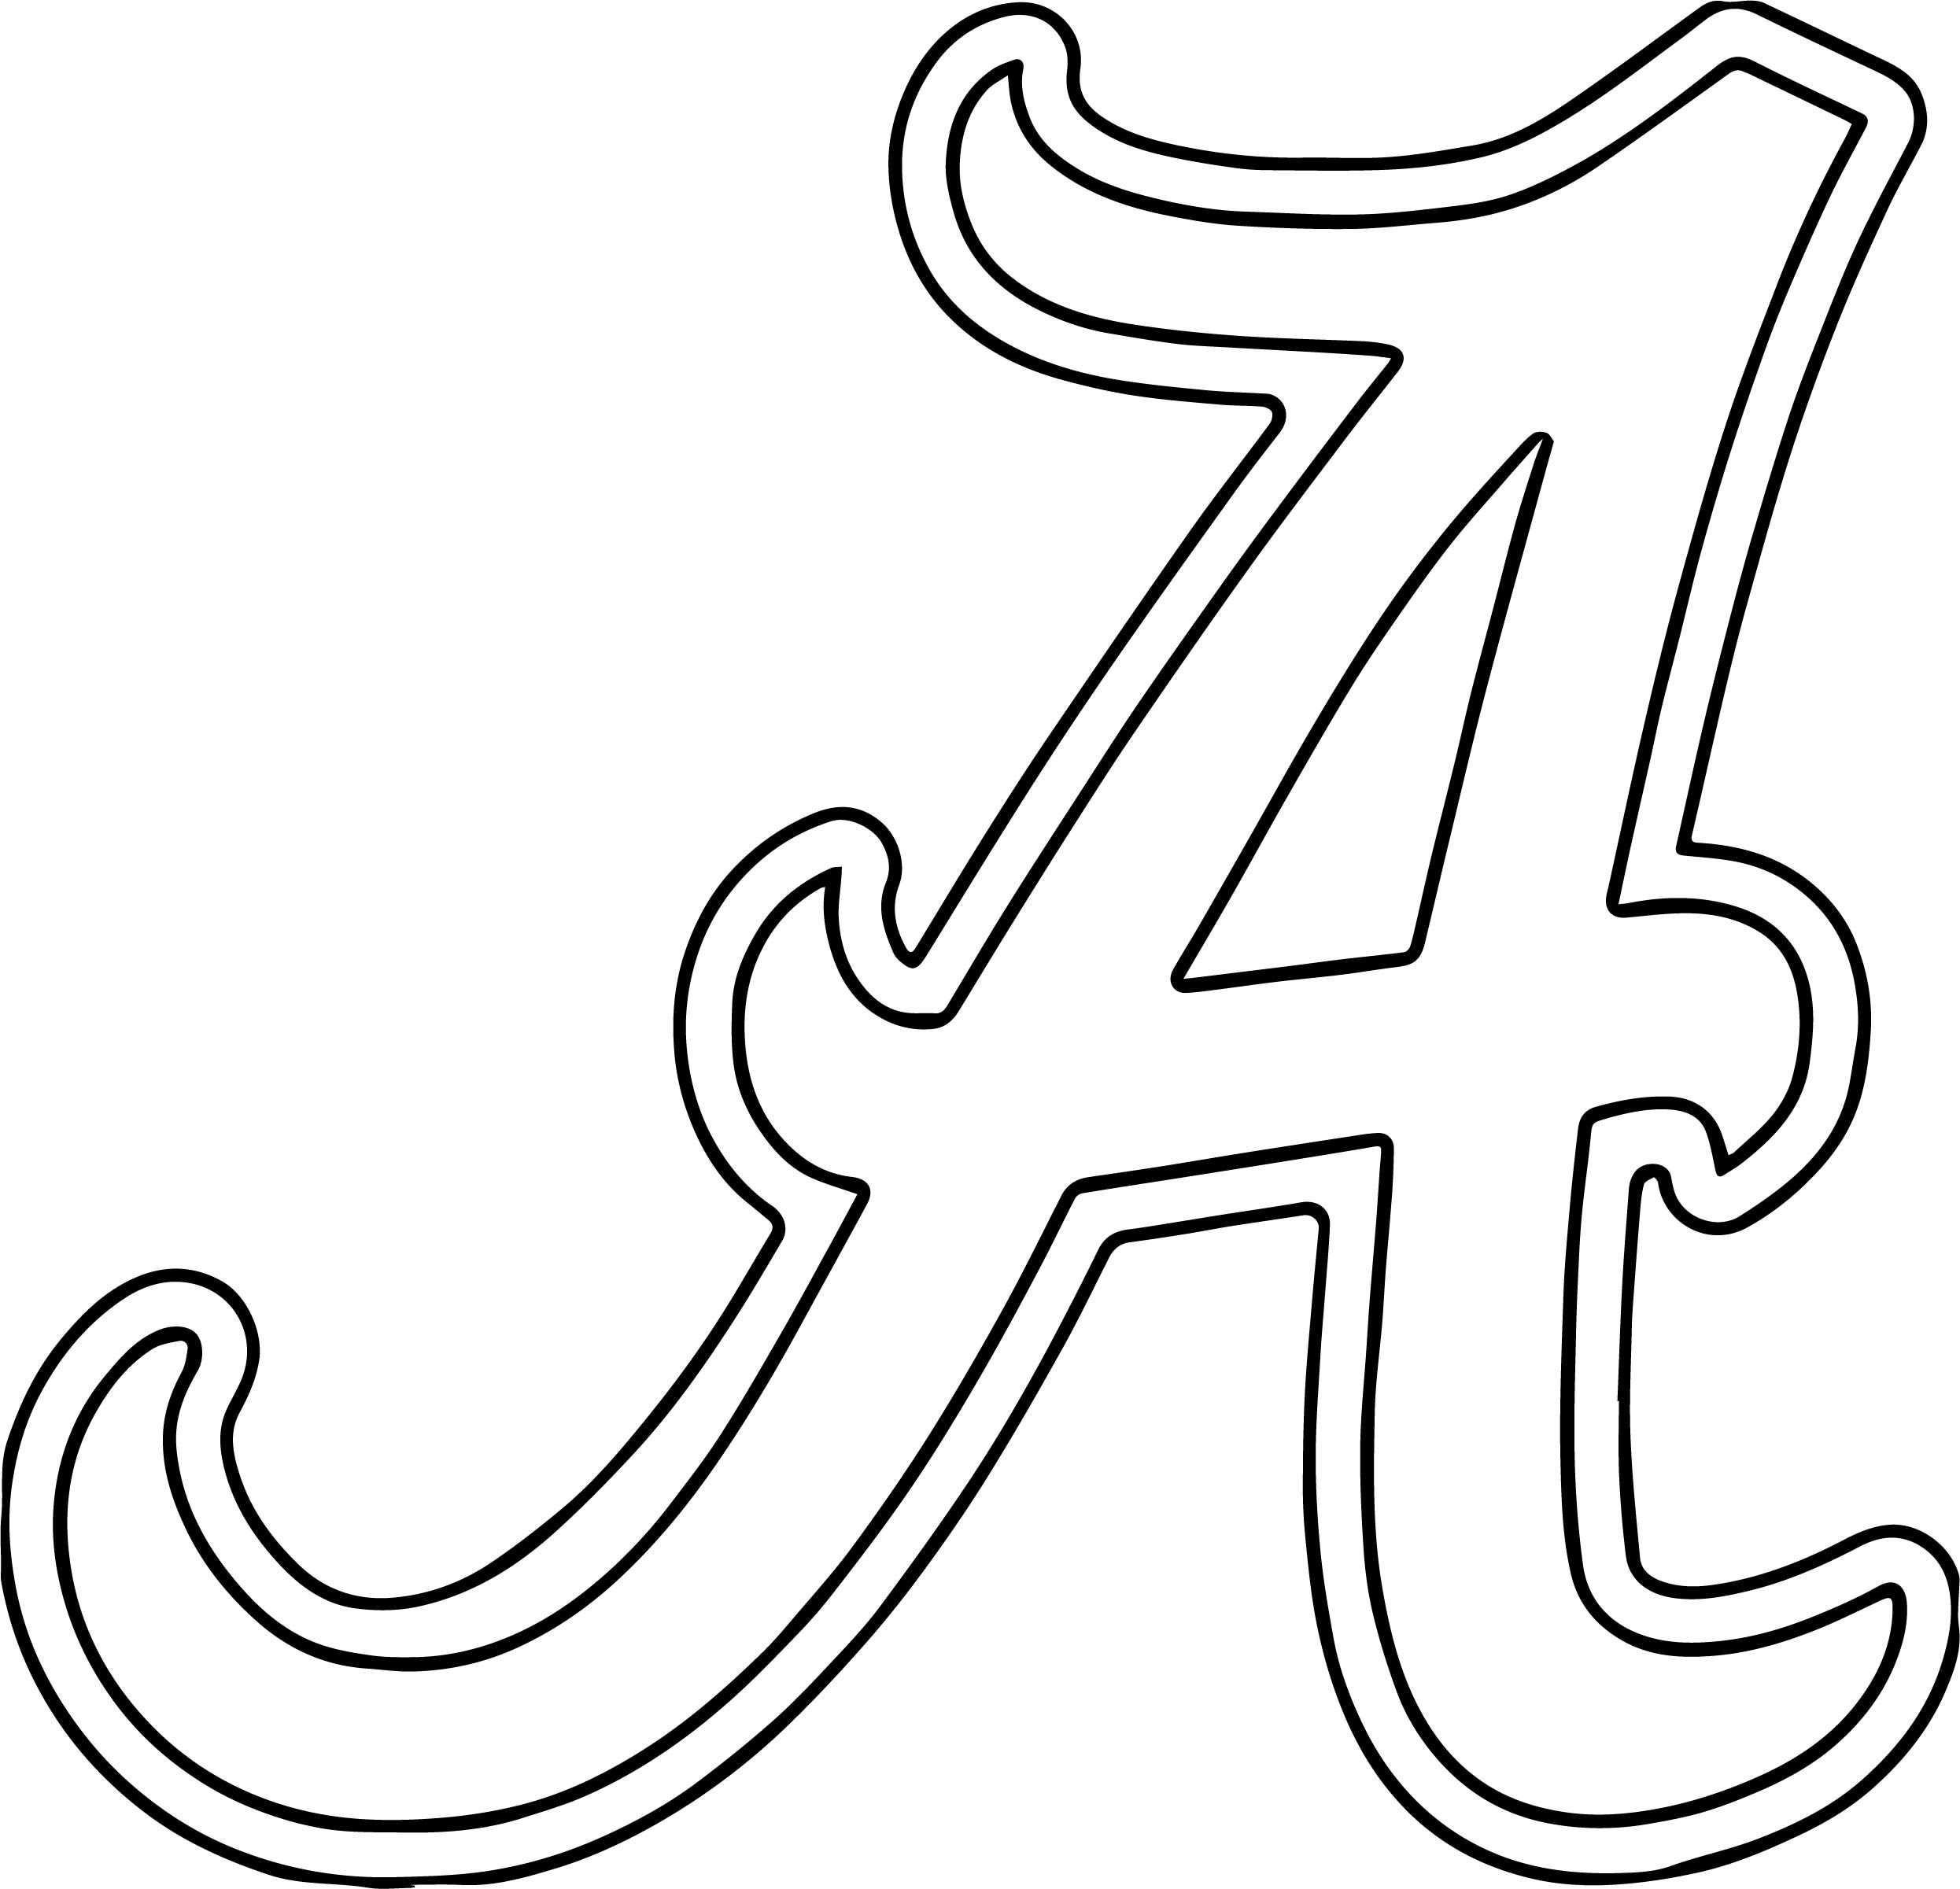 2491x2401 Awesome Alabama Coloring Pages Printable Gallery Free Coloring Pages